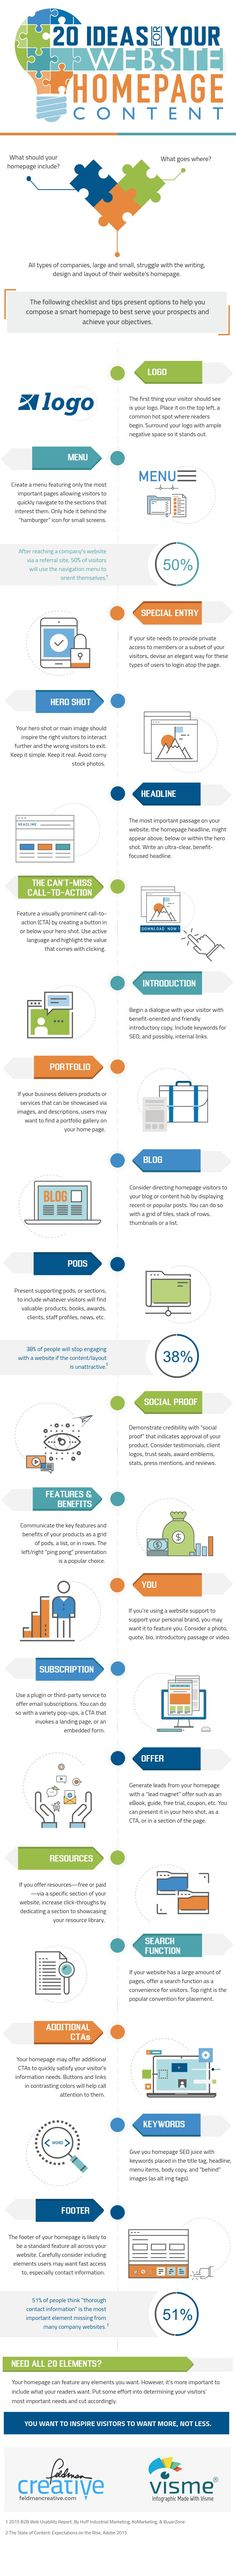 Website Homepage Content infographic